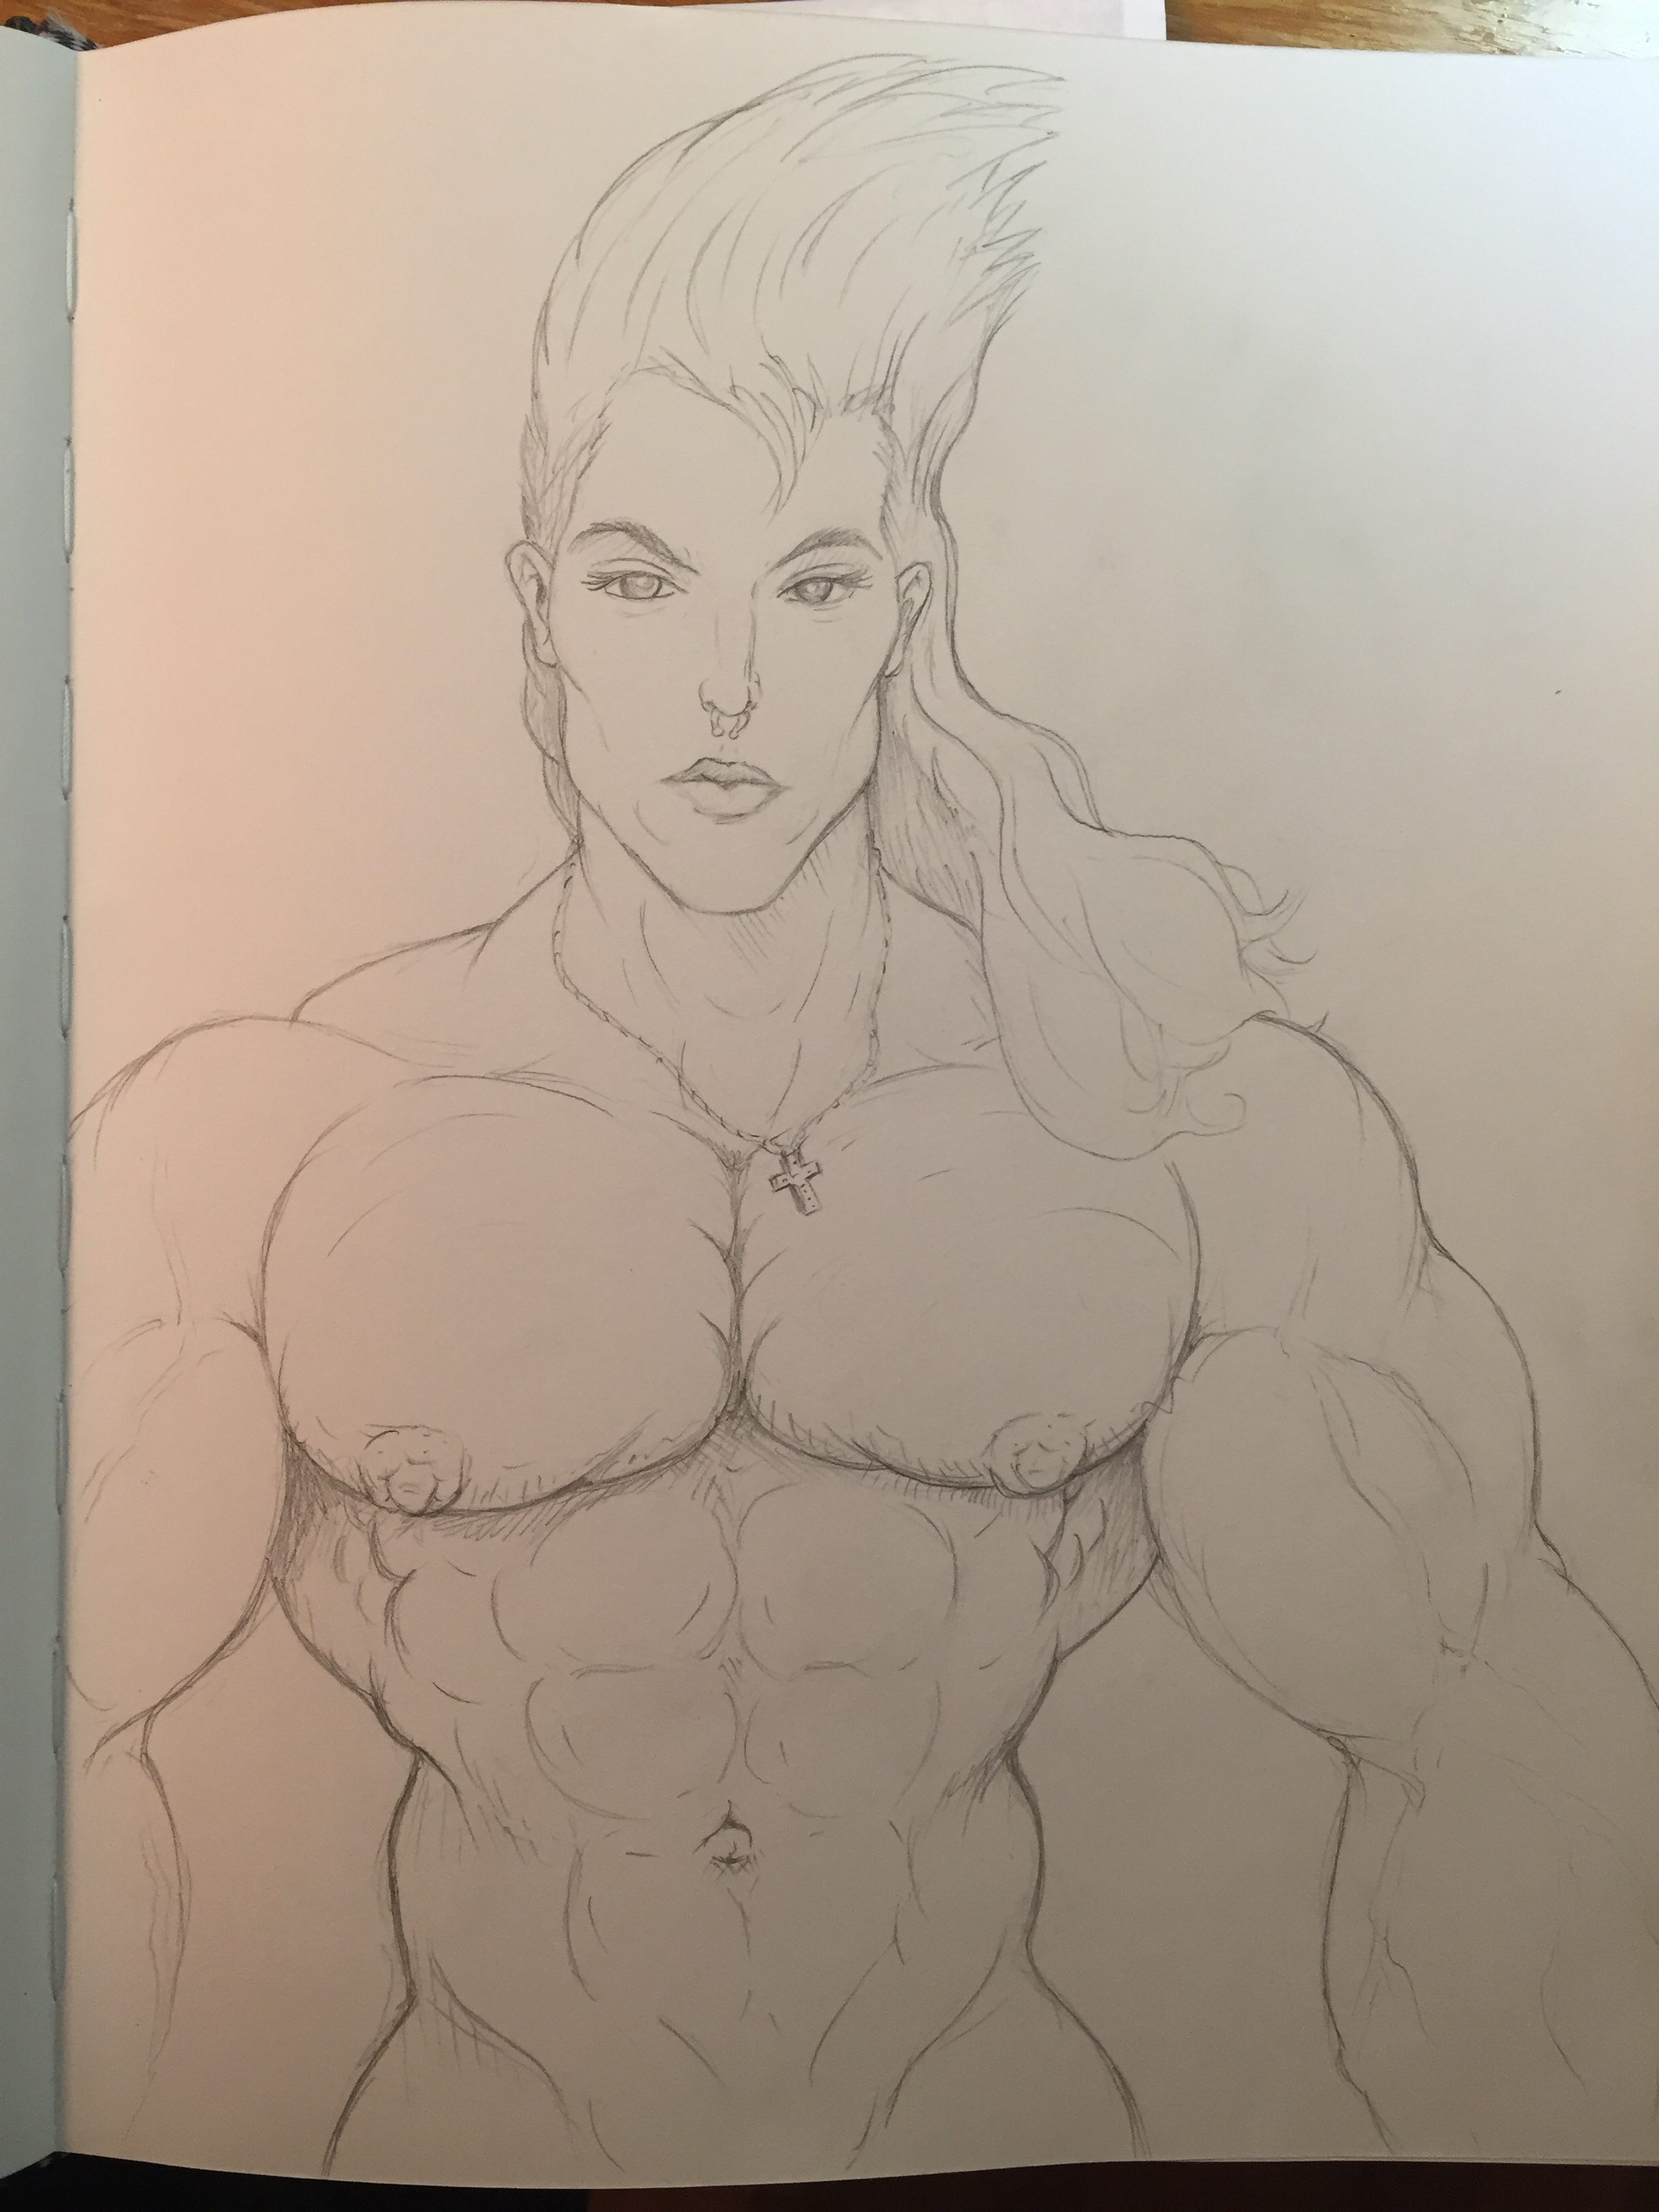 I was given the challenge to draw beautiful Jake as a muscular bodybuilder, and it took me under an hour to complete the sketch